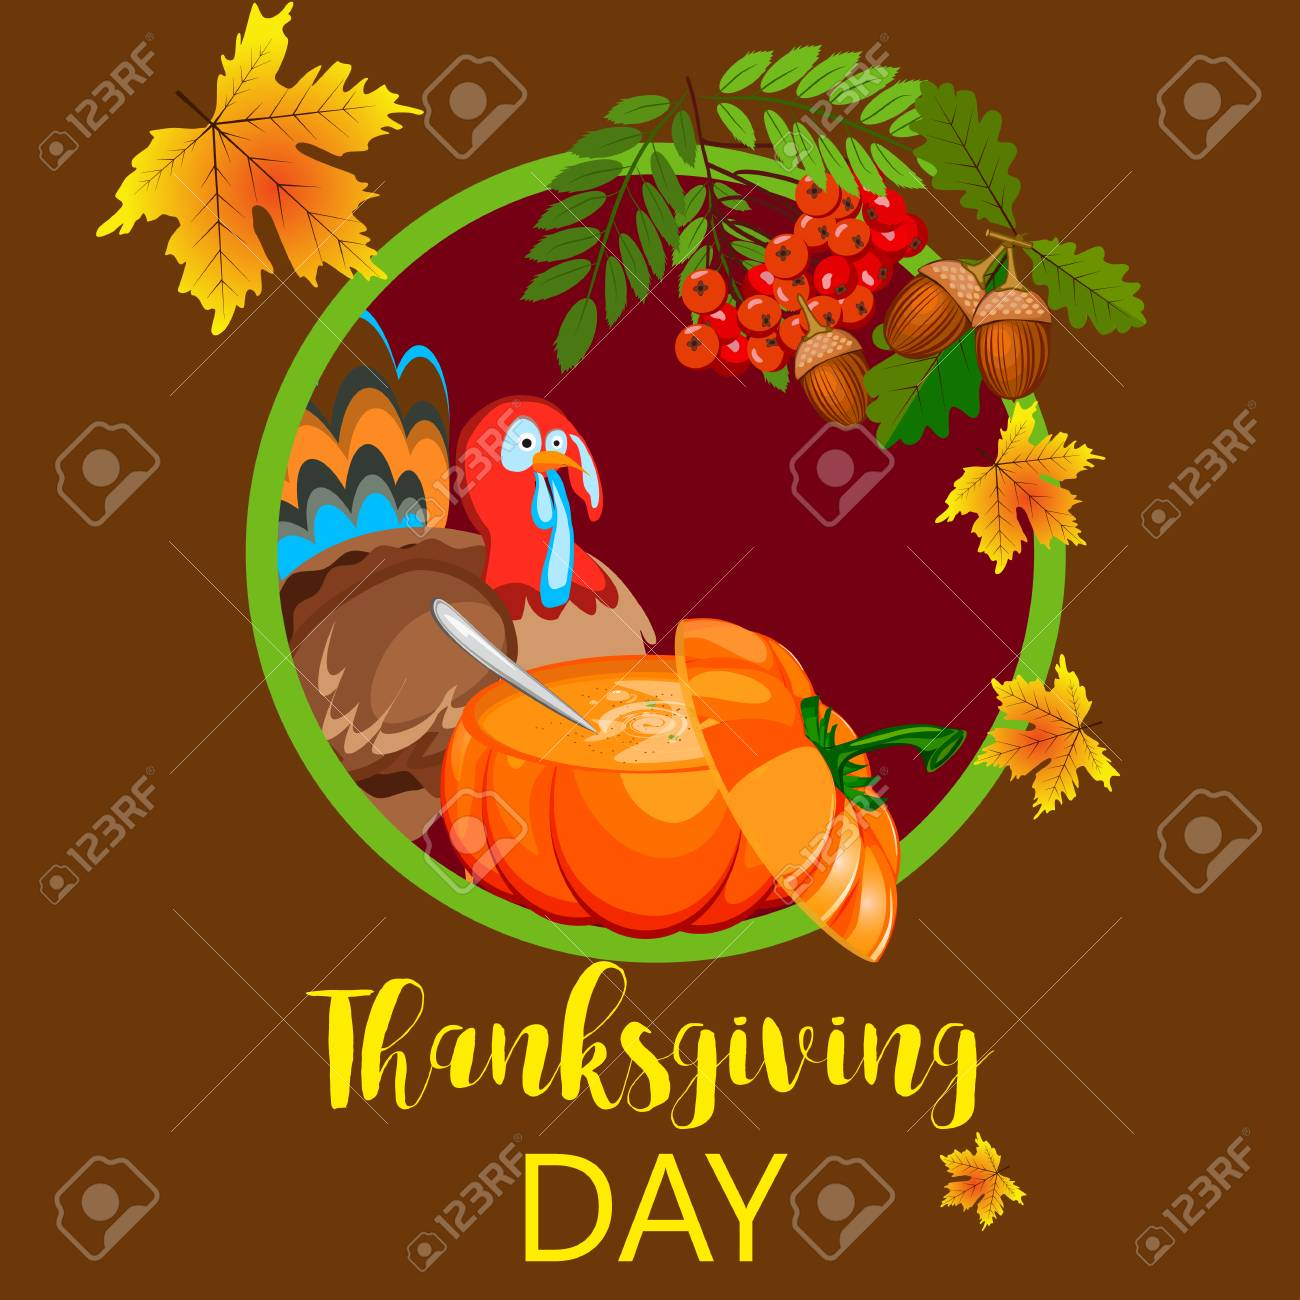 Happy thanksgiving card celebration banner design cartoon autumn happy thanksgiving card celebration banner design cartoon autumn greeting harvest season holiday brochure vector illustration kristyandbryce Choice Image